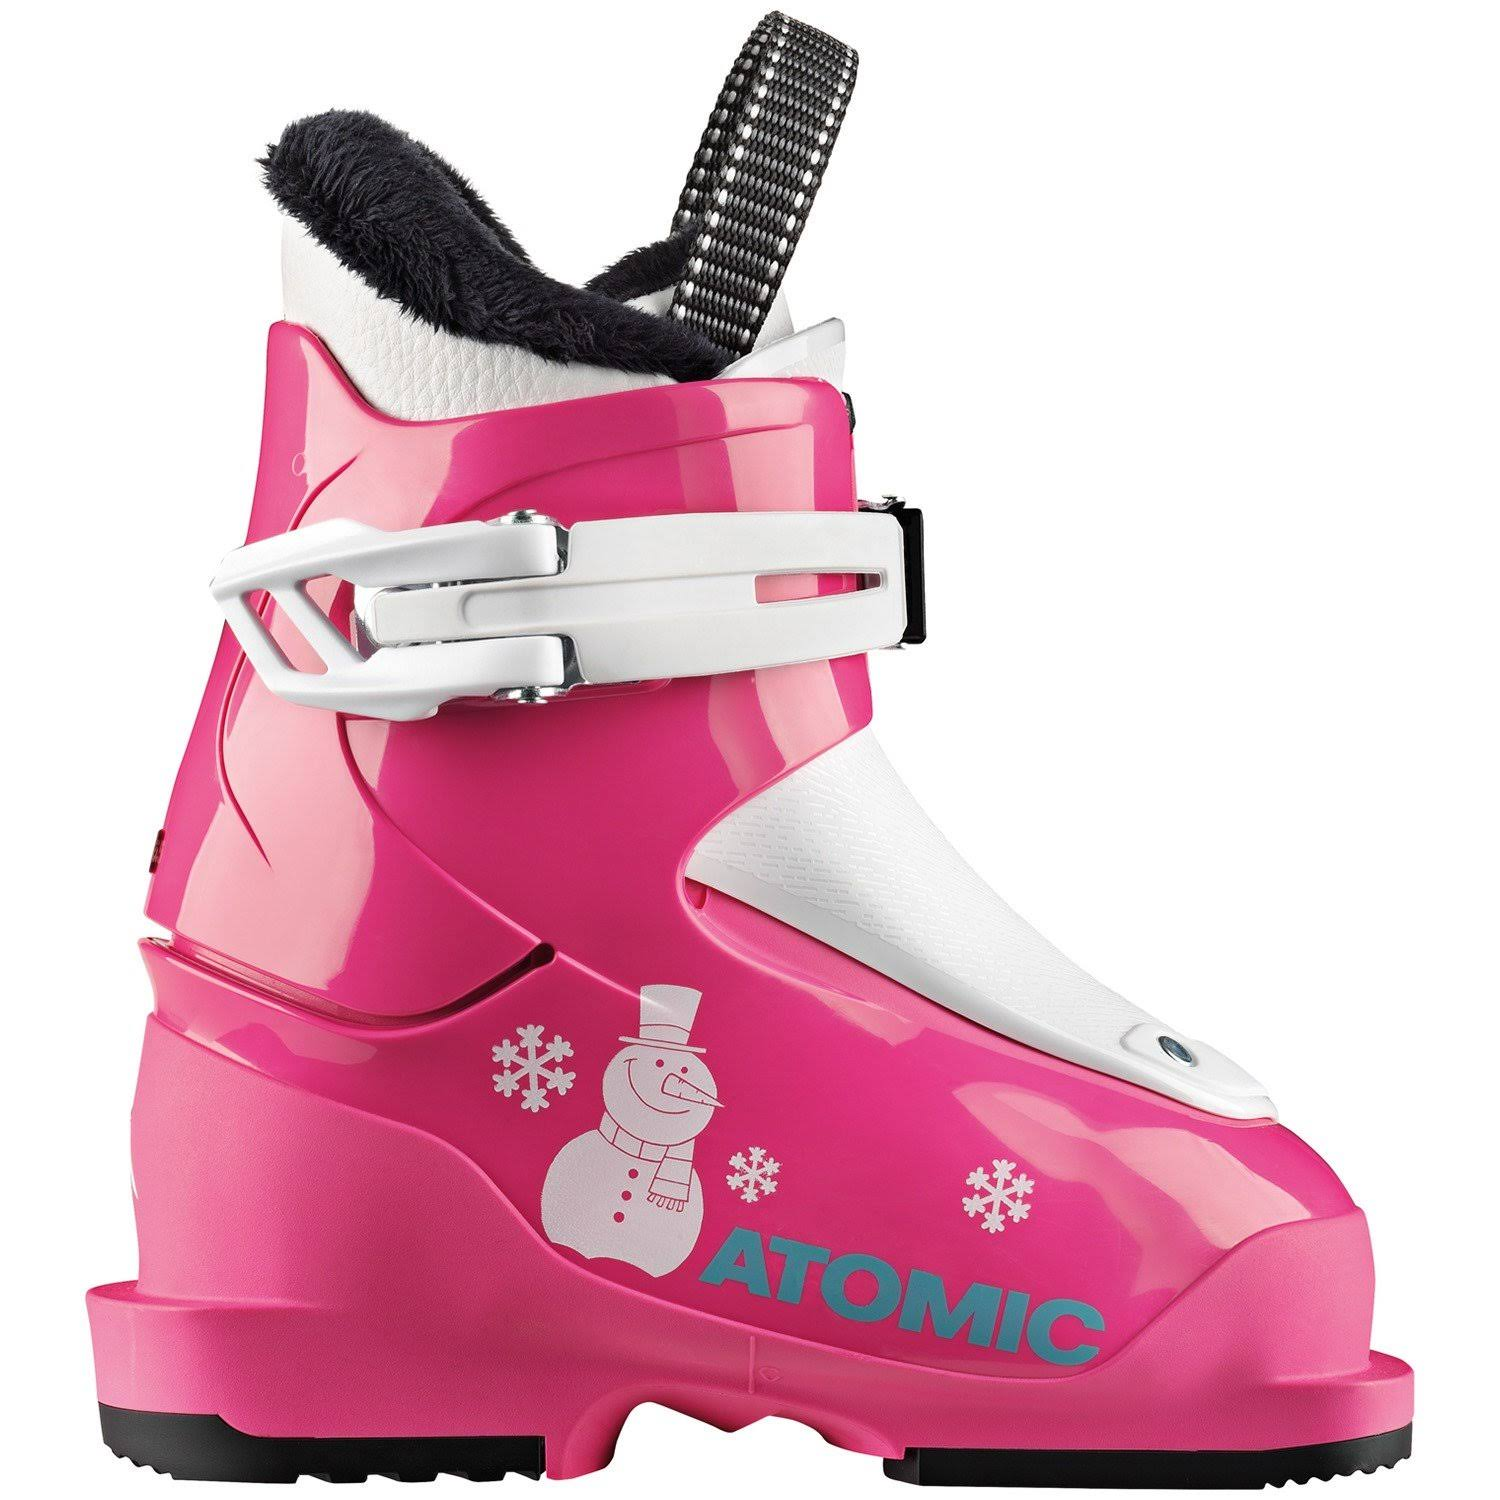 Atomic Hawx Girl 1 Girls Ski Boots 2020 Pink-White 16.0